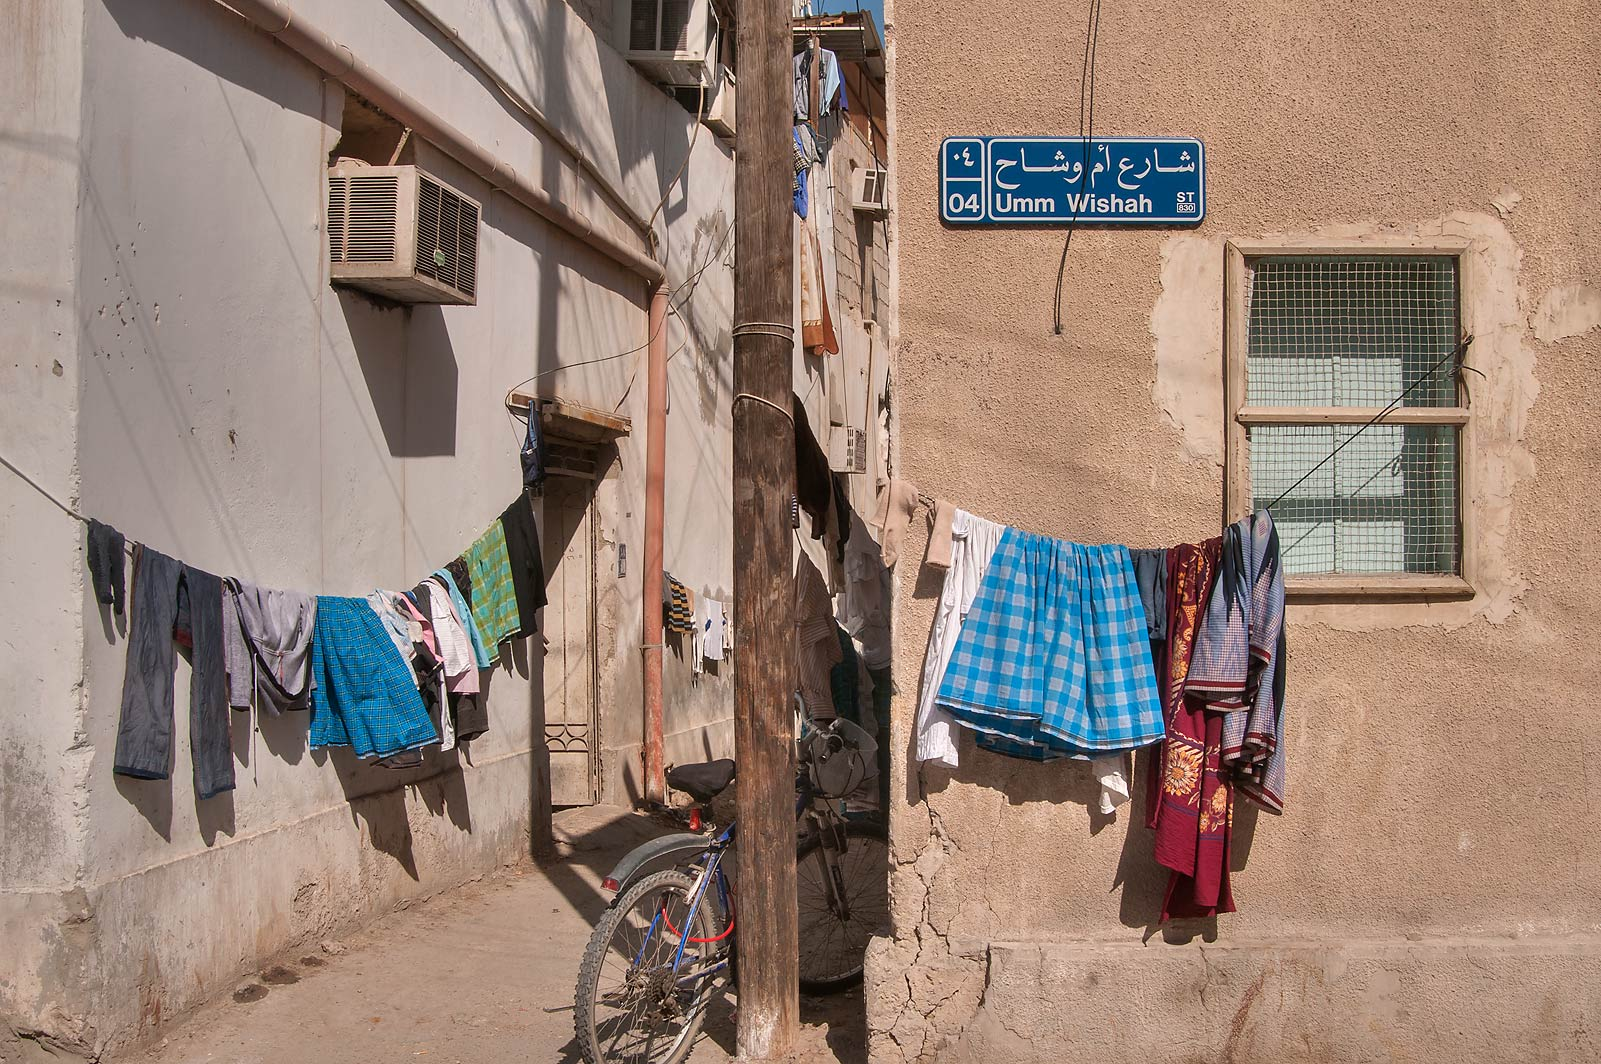 Drying laundry at Umm Wishah St.. Doha, Qatar